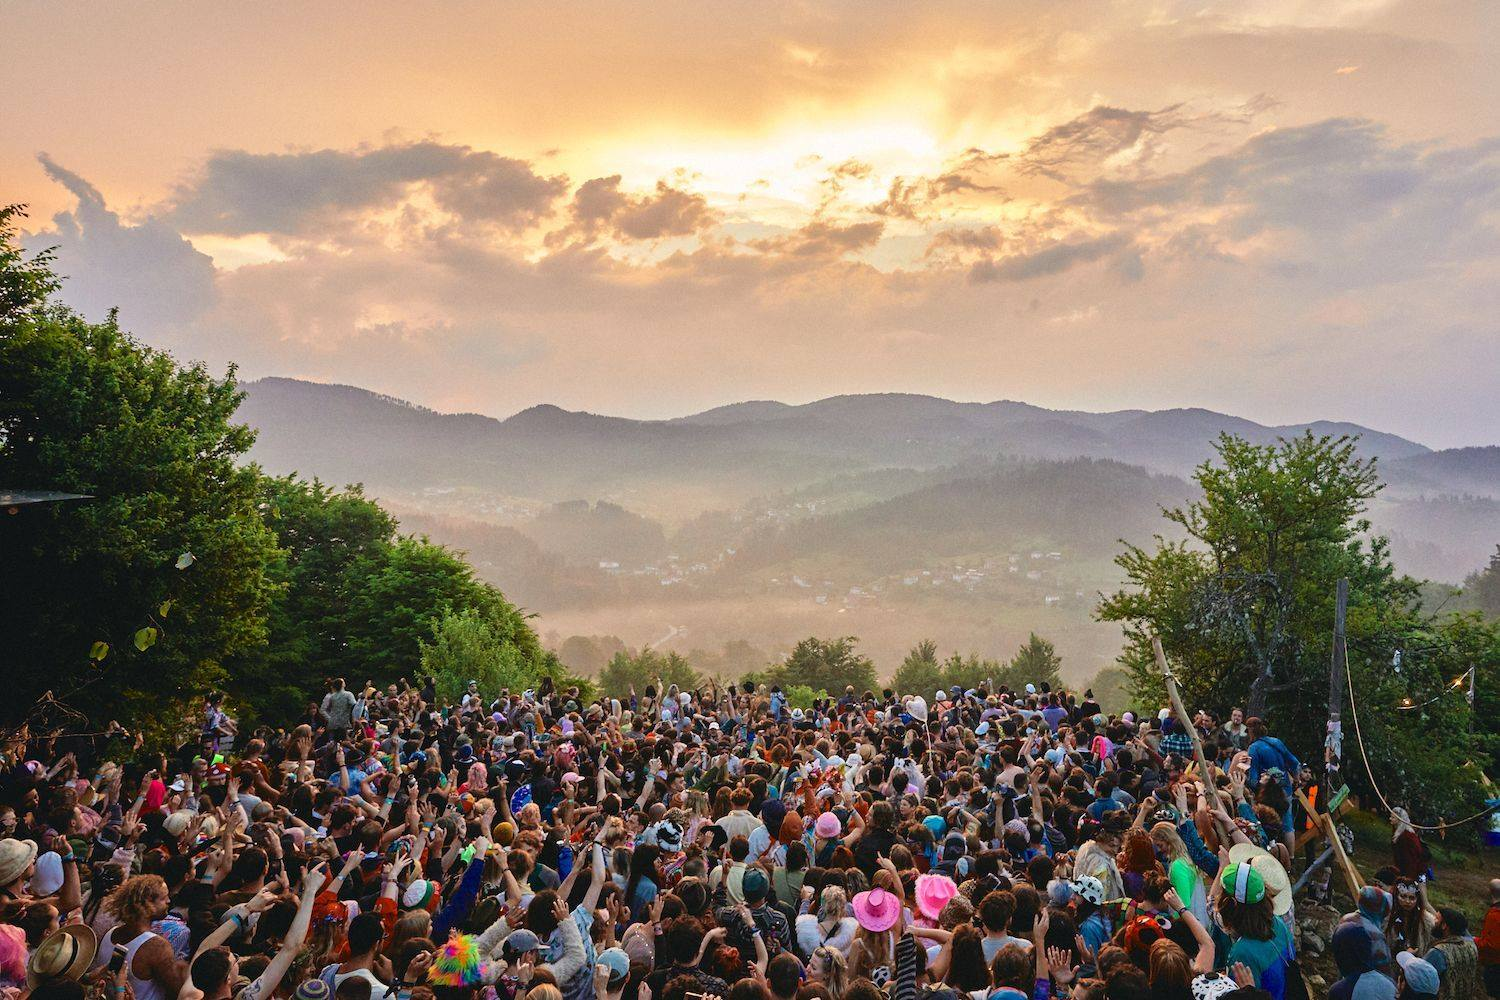 Meadows in the Mountains Festival